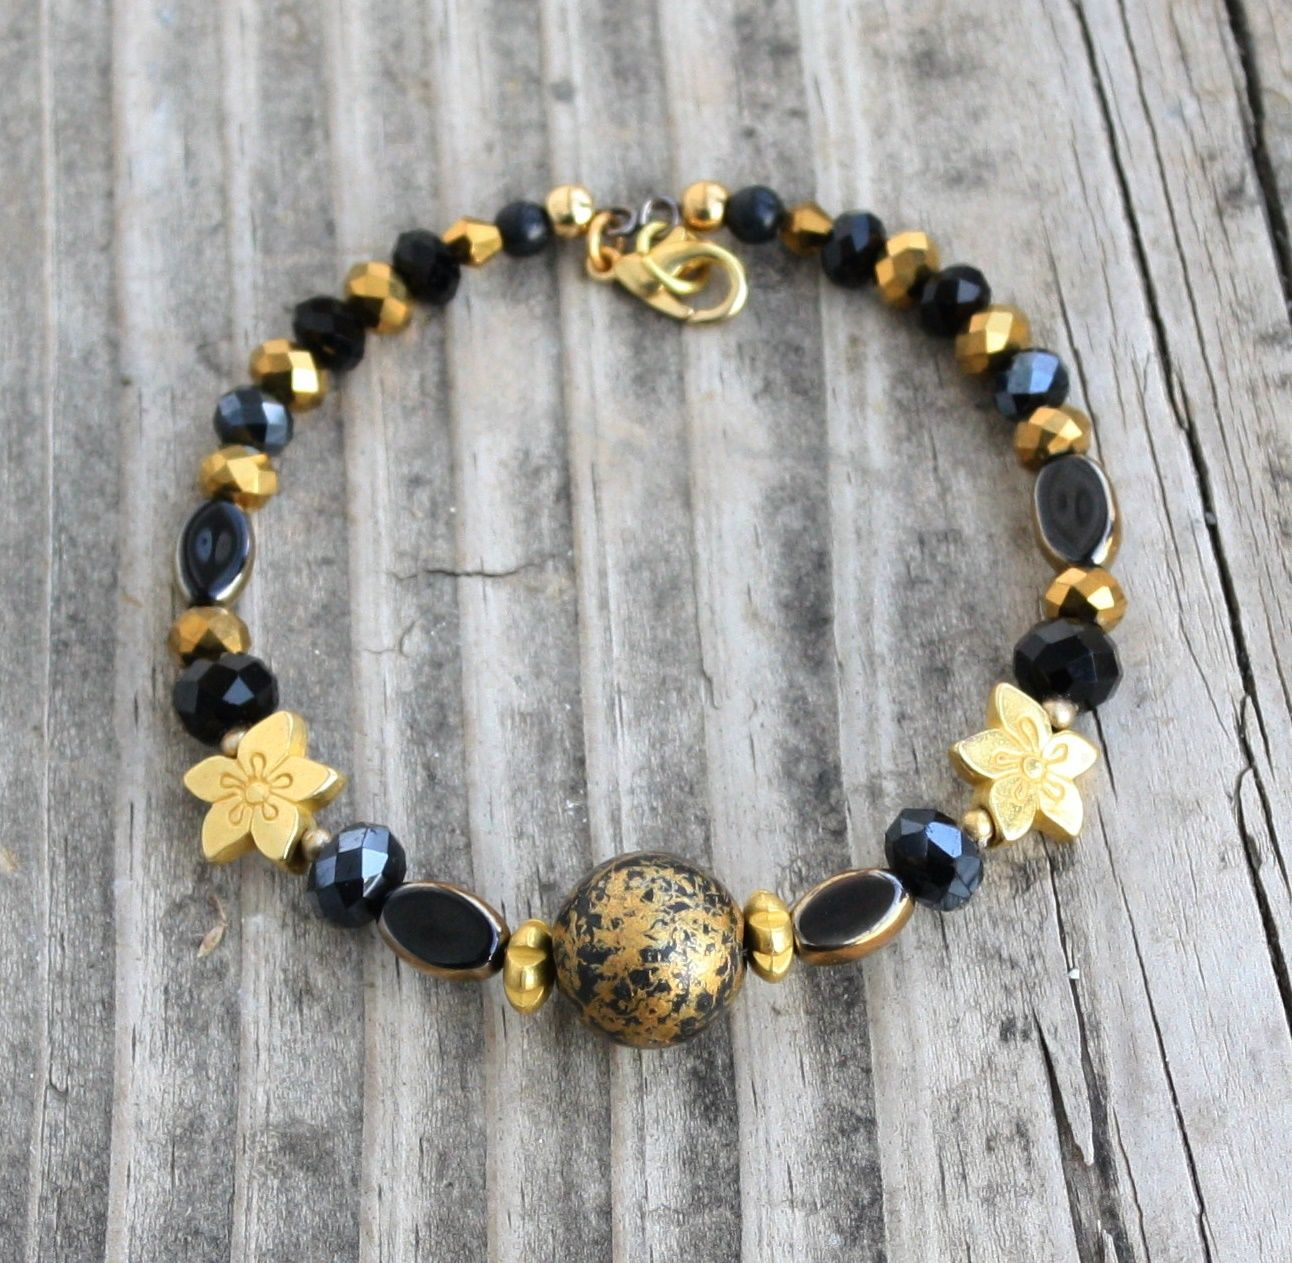 Black & Gold Pewter Flowers Memory Wire Bracelet $12.00  This rich bracelet is made with oval gold over black glass beads, faceted black and gold crystals, a black and gold acrylic focal bead and pewter spacers and flowers on memory wire with a gold plated lobster clasp.  This can be adjusted to any size upon request.